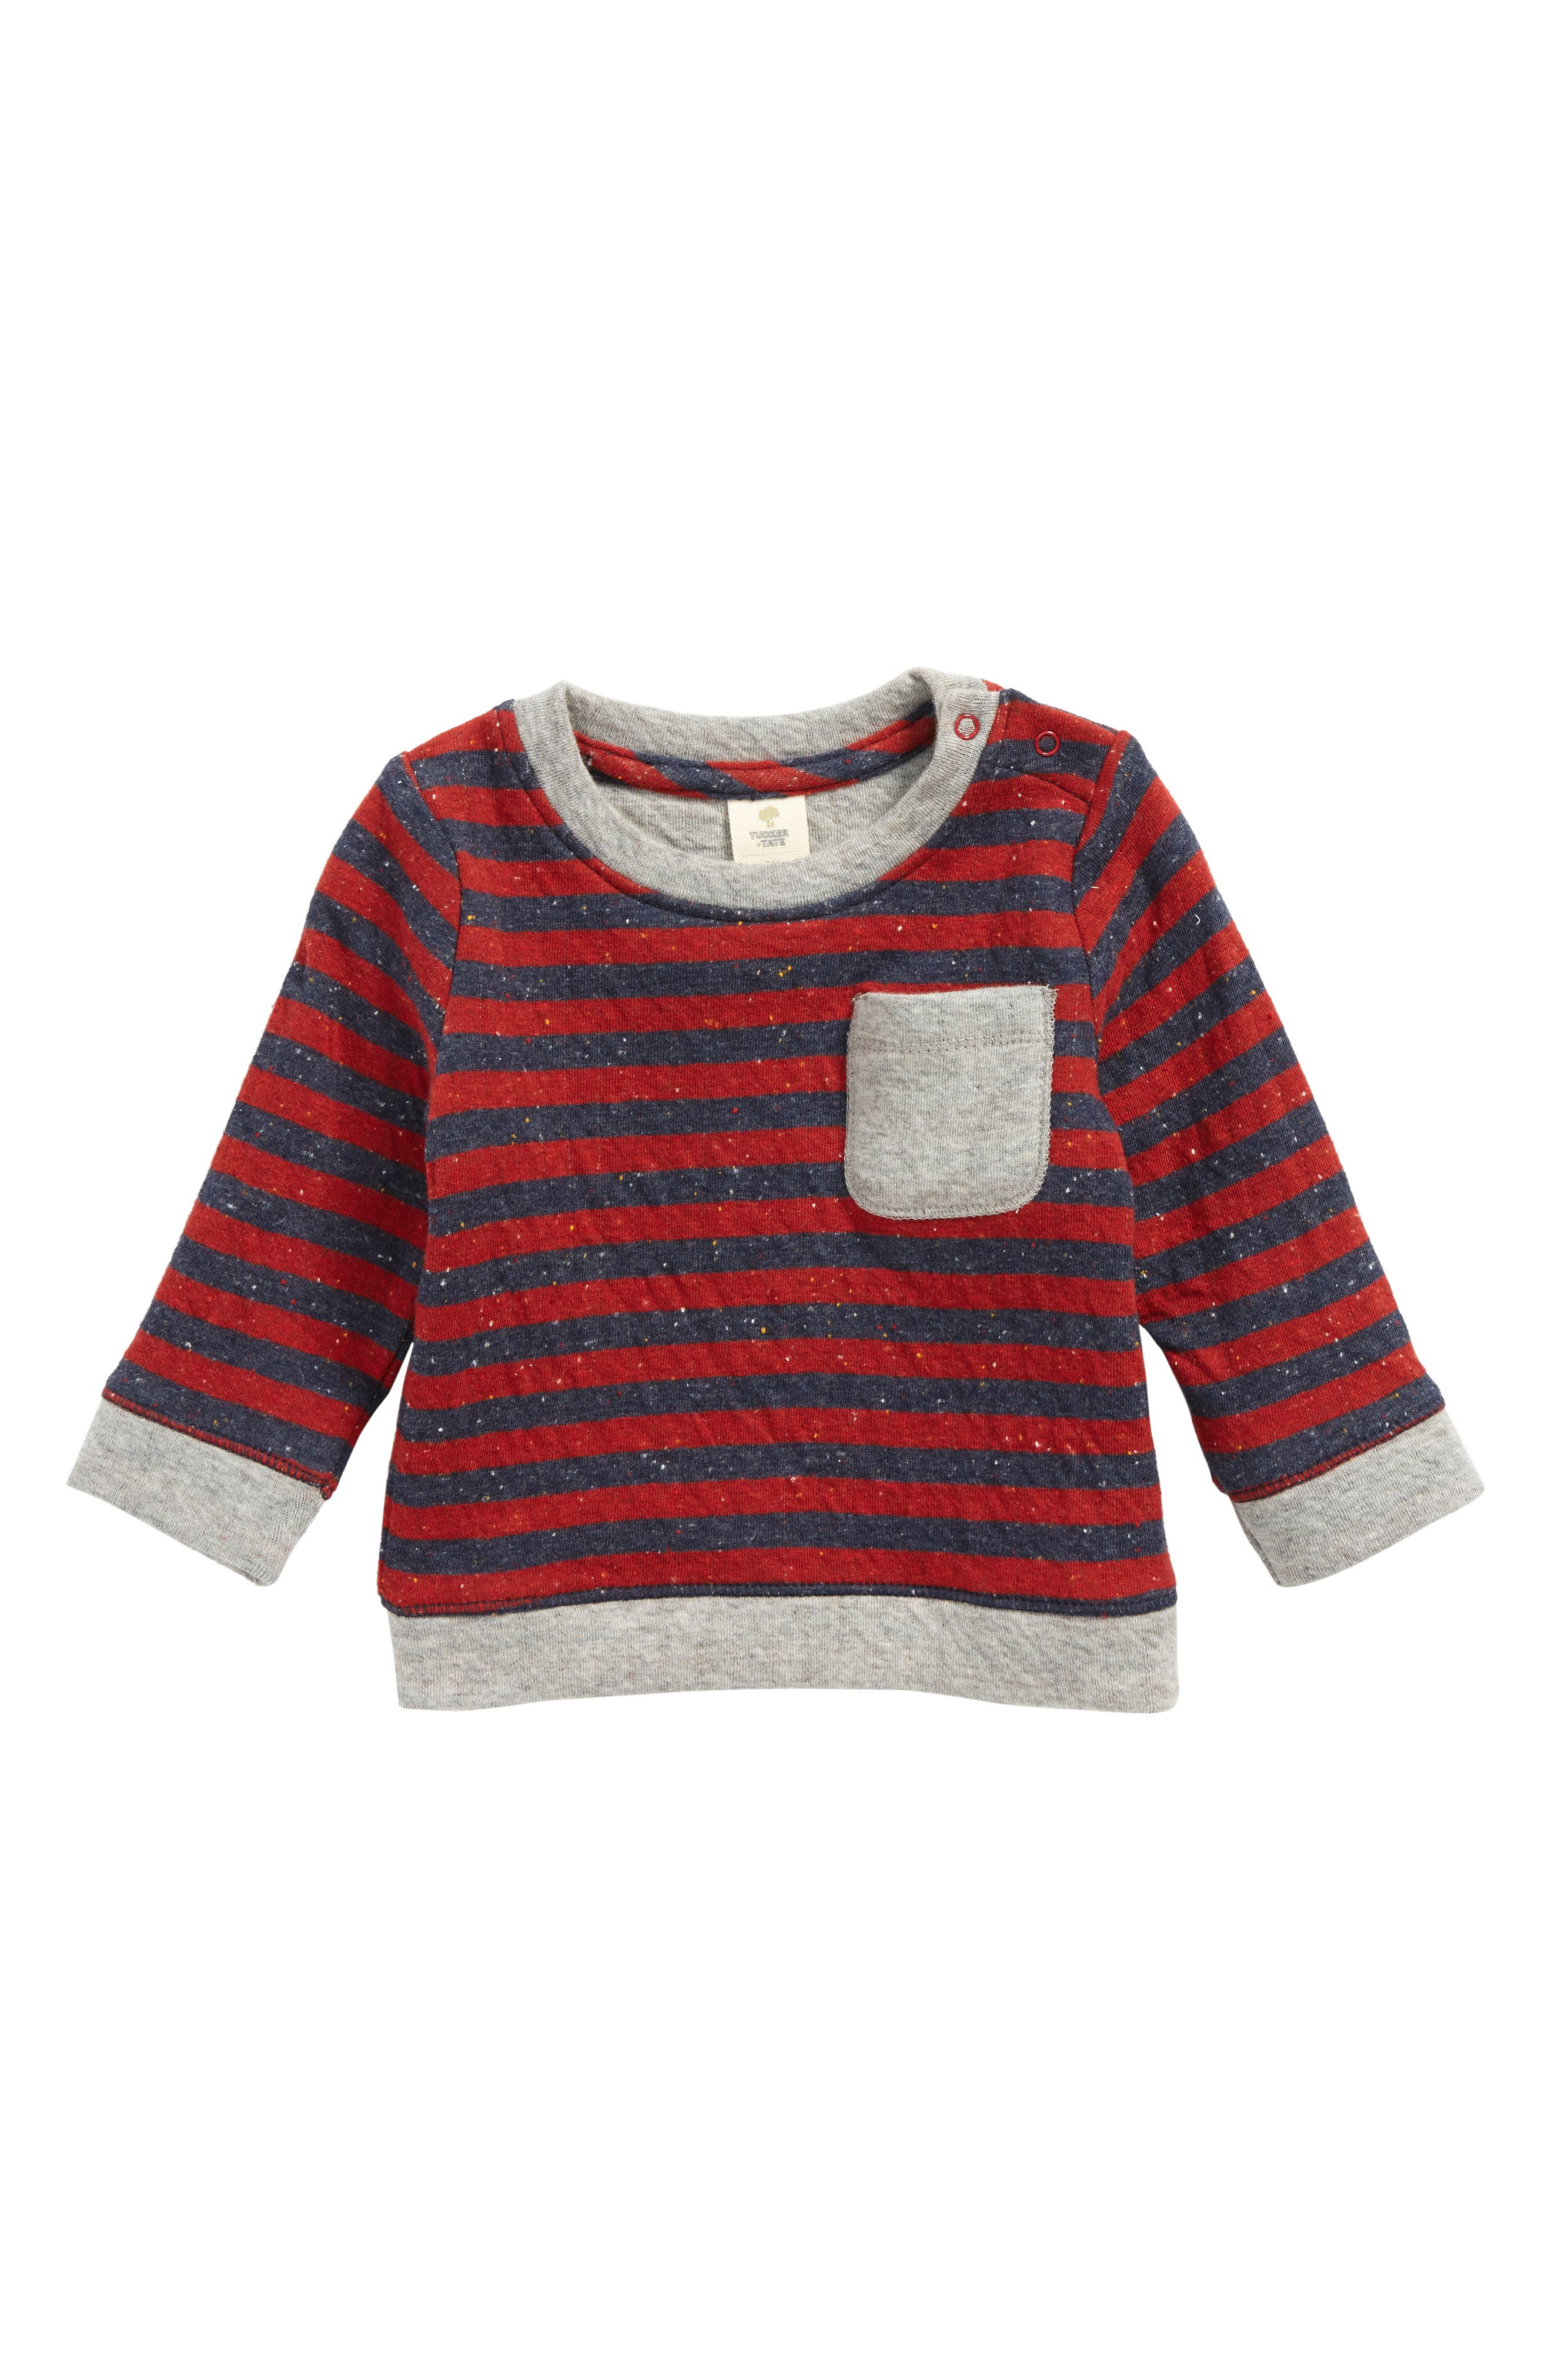 Pocket T-Shirt,                         Main,                         color, Red Chili- Navy Stripe